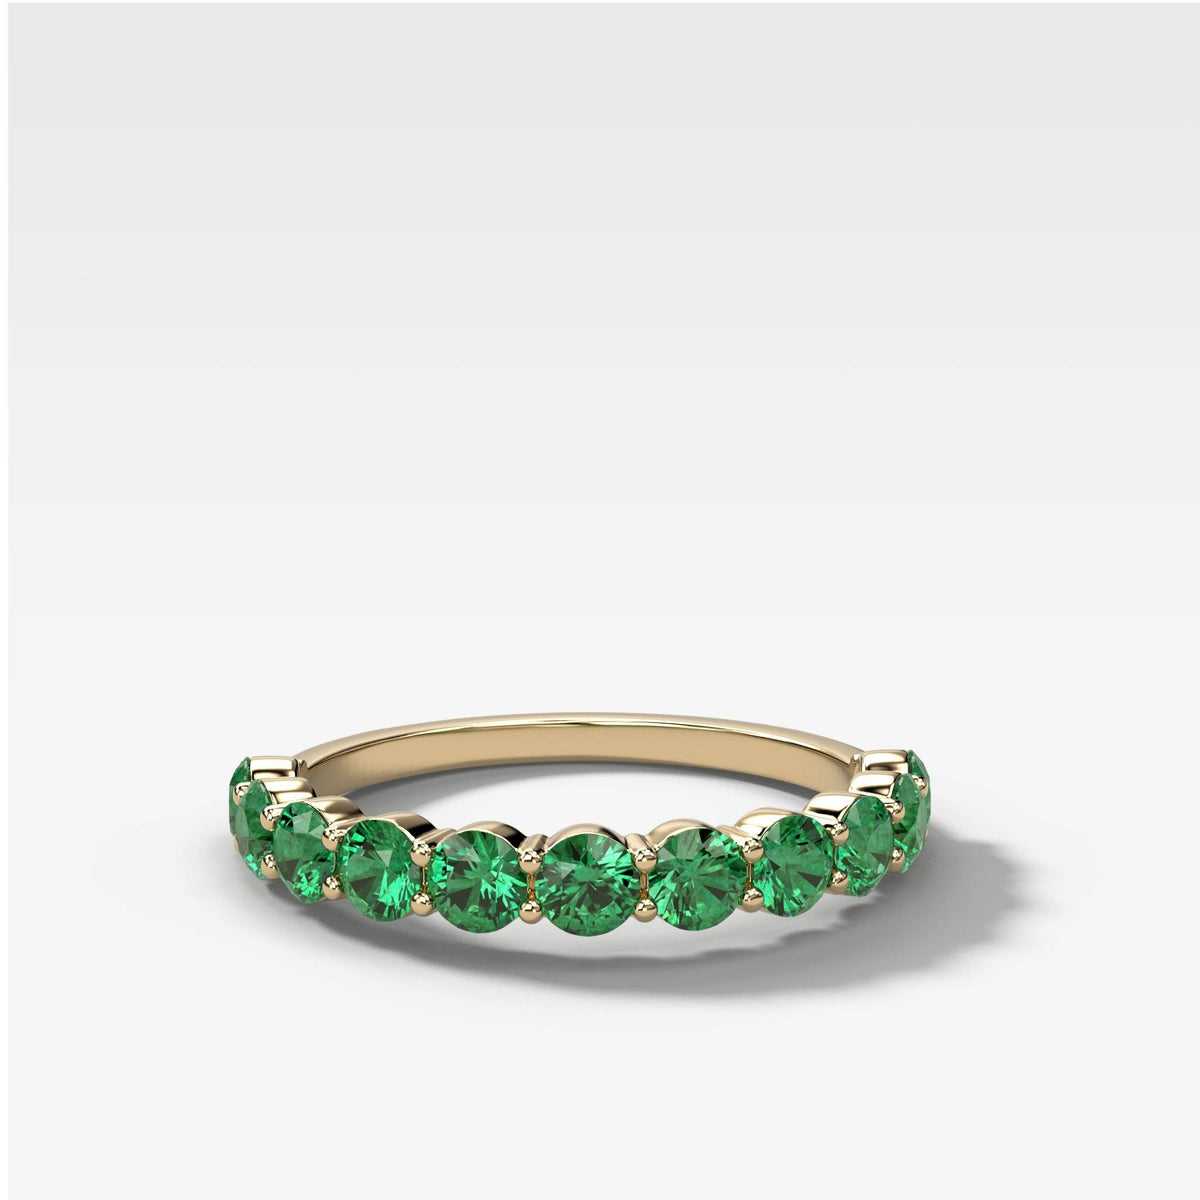 Shared Prong Stacker With Green Emeralds in Yellow Gold by Good Stone